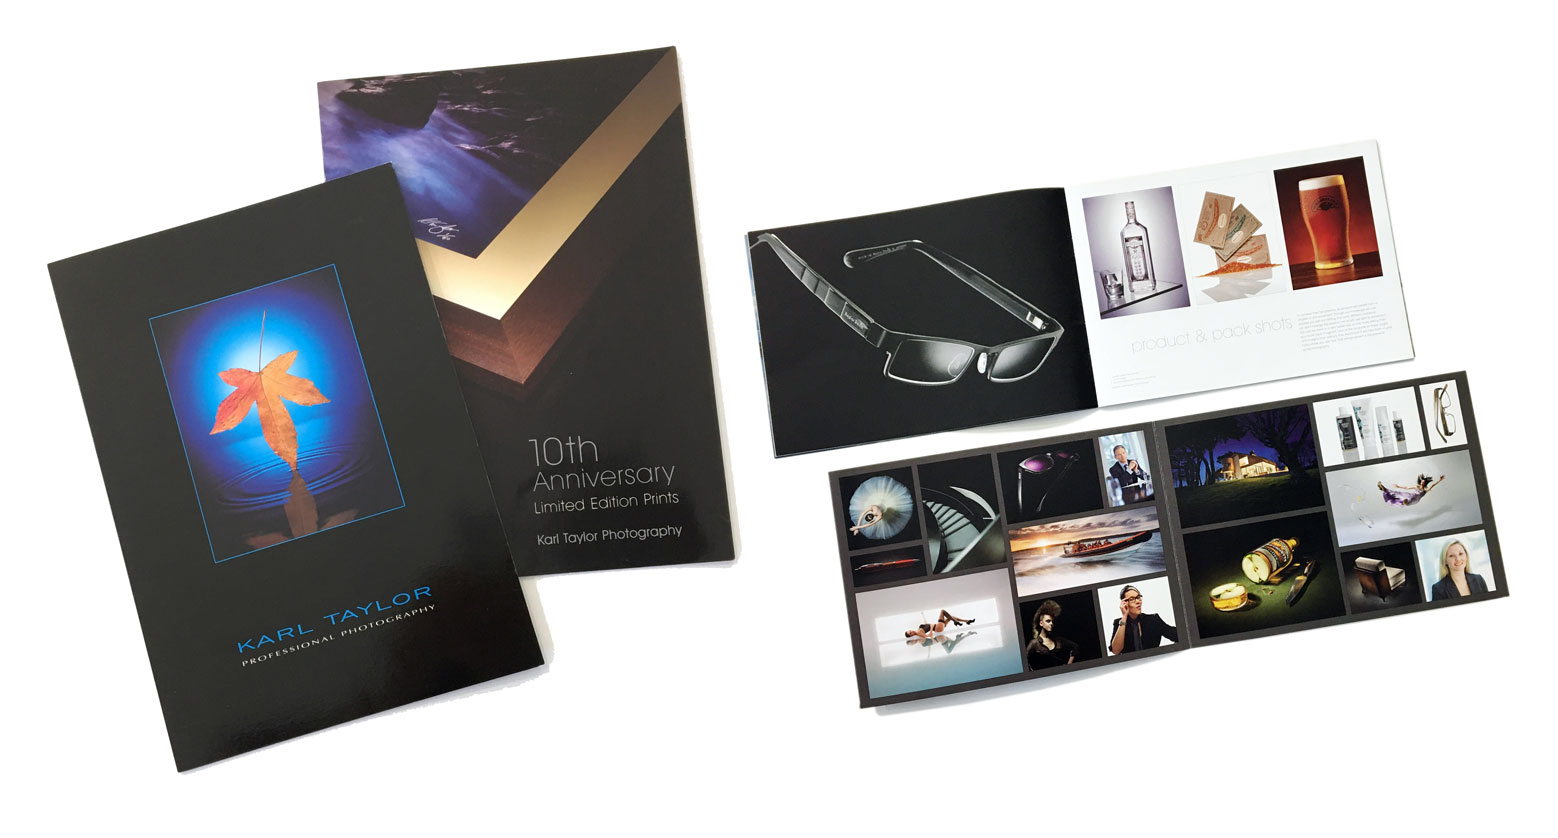 Marketing material for photographers